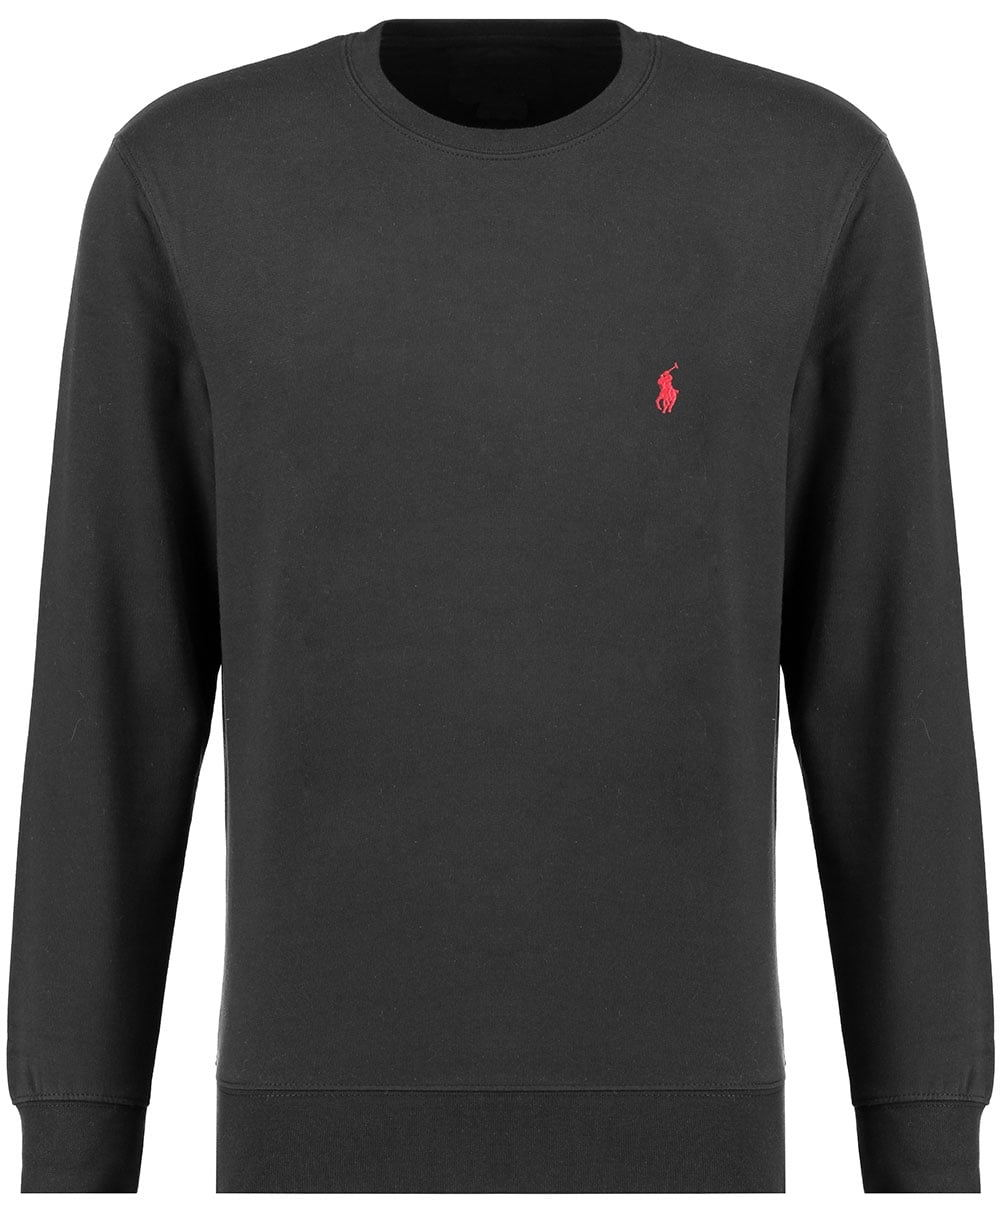 polo ralph lauren mens sweatshirt black long sleeve. Black Bedroom Furniture Sets. Home Design Ideas